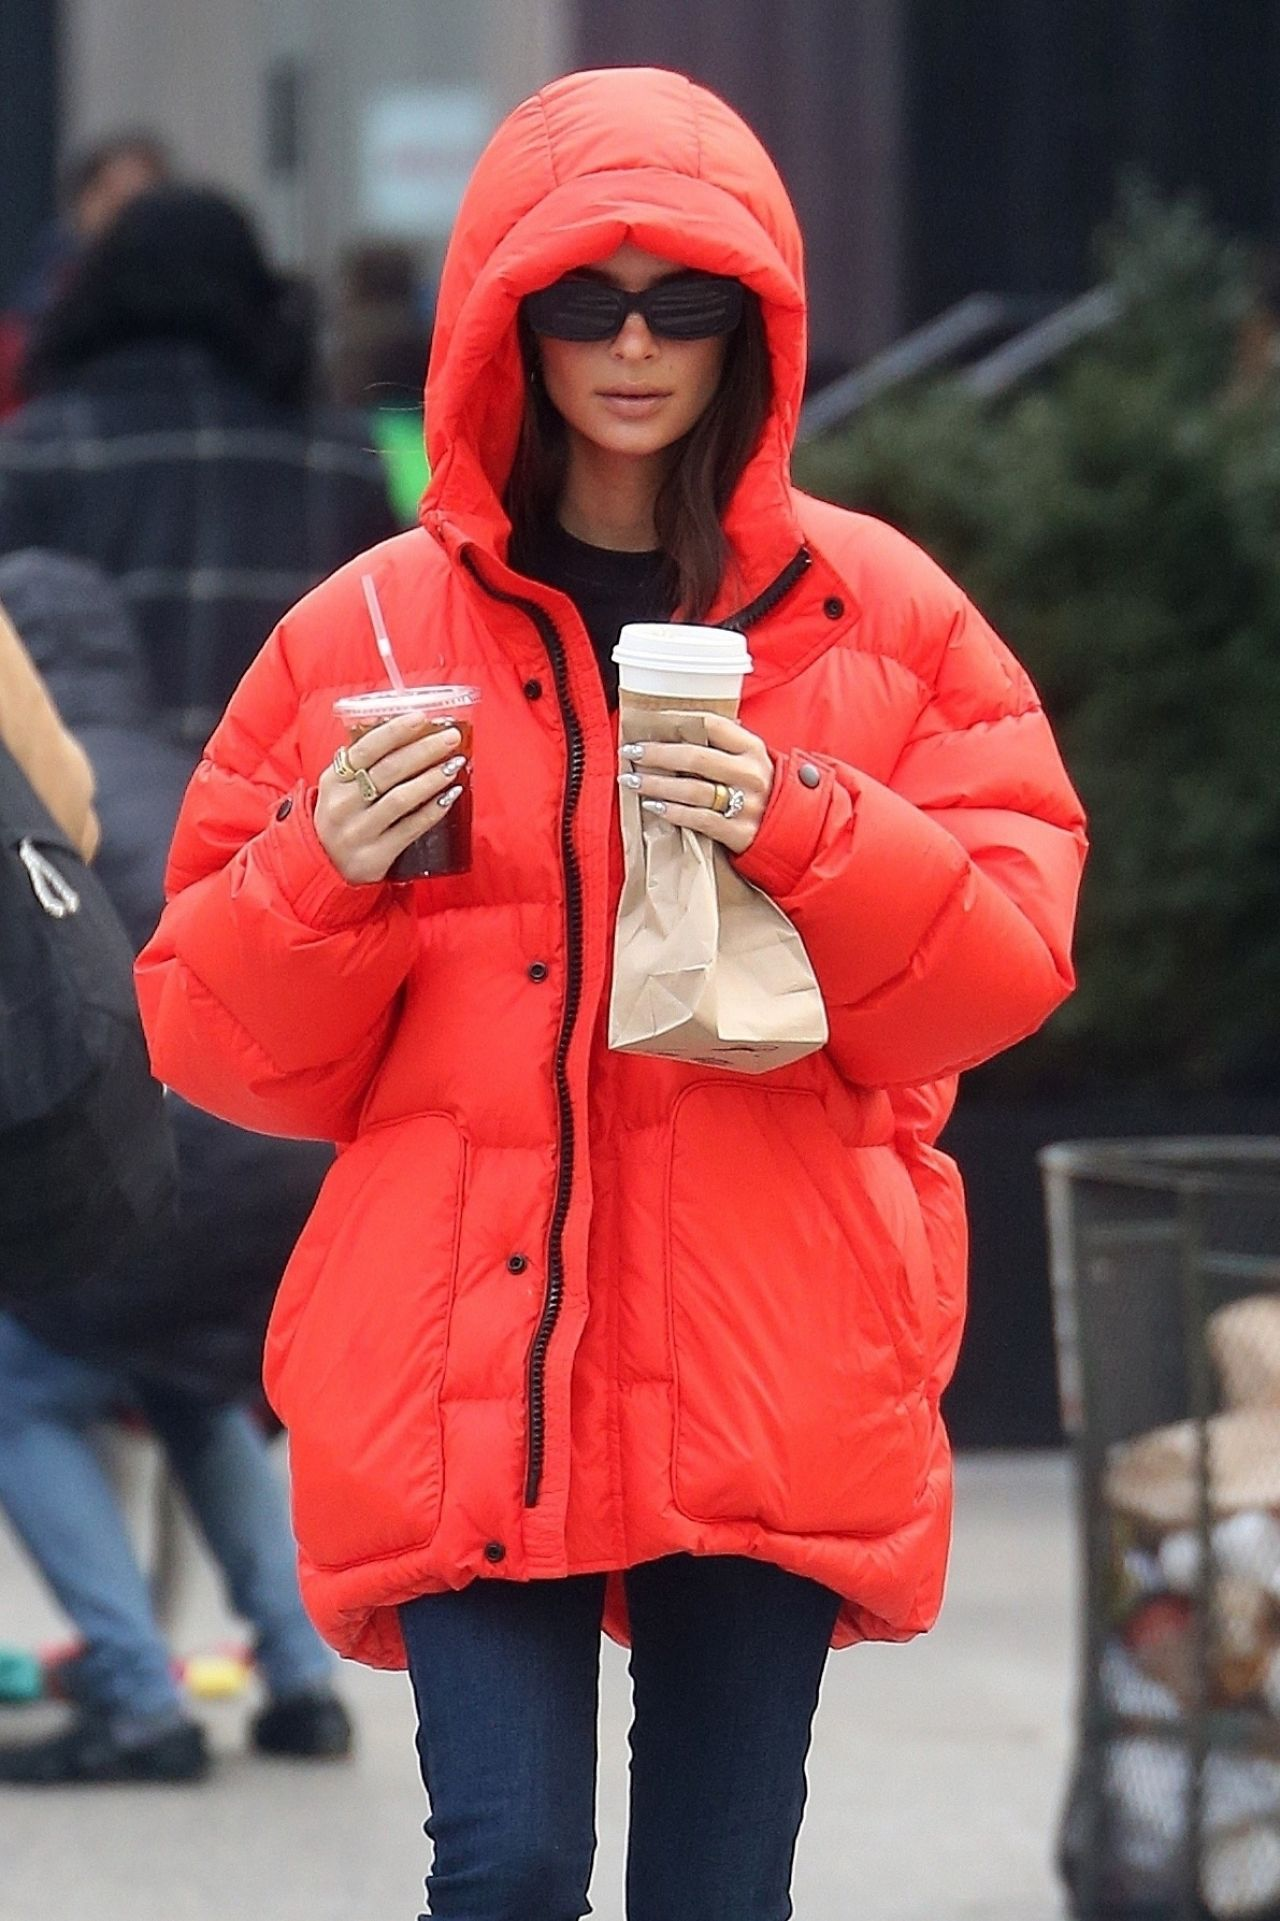 Emily Ratajkowski in Bright Red Puffer Coat 01/23/2020